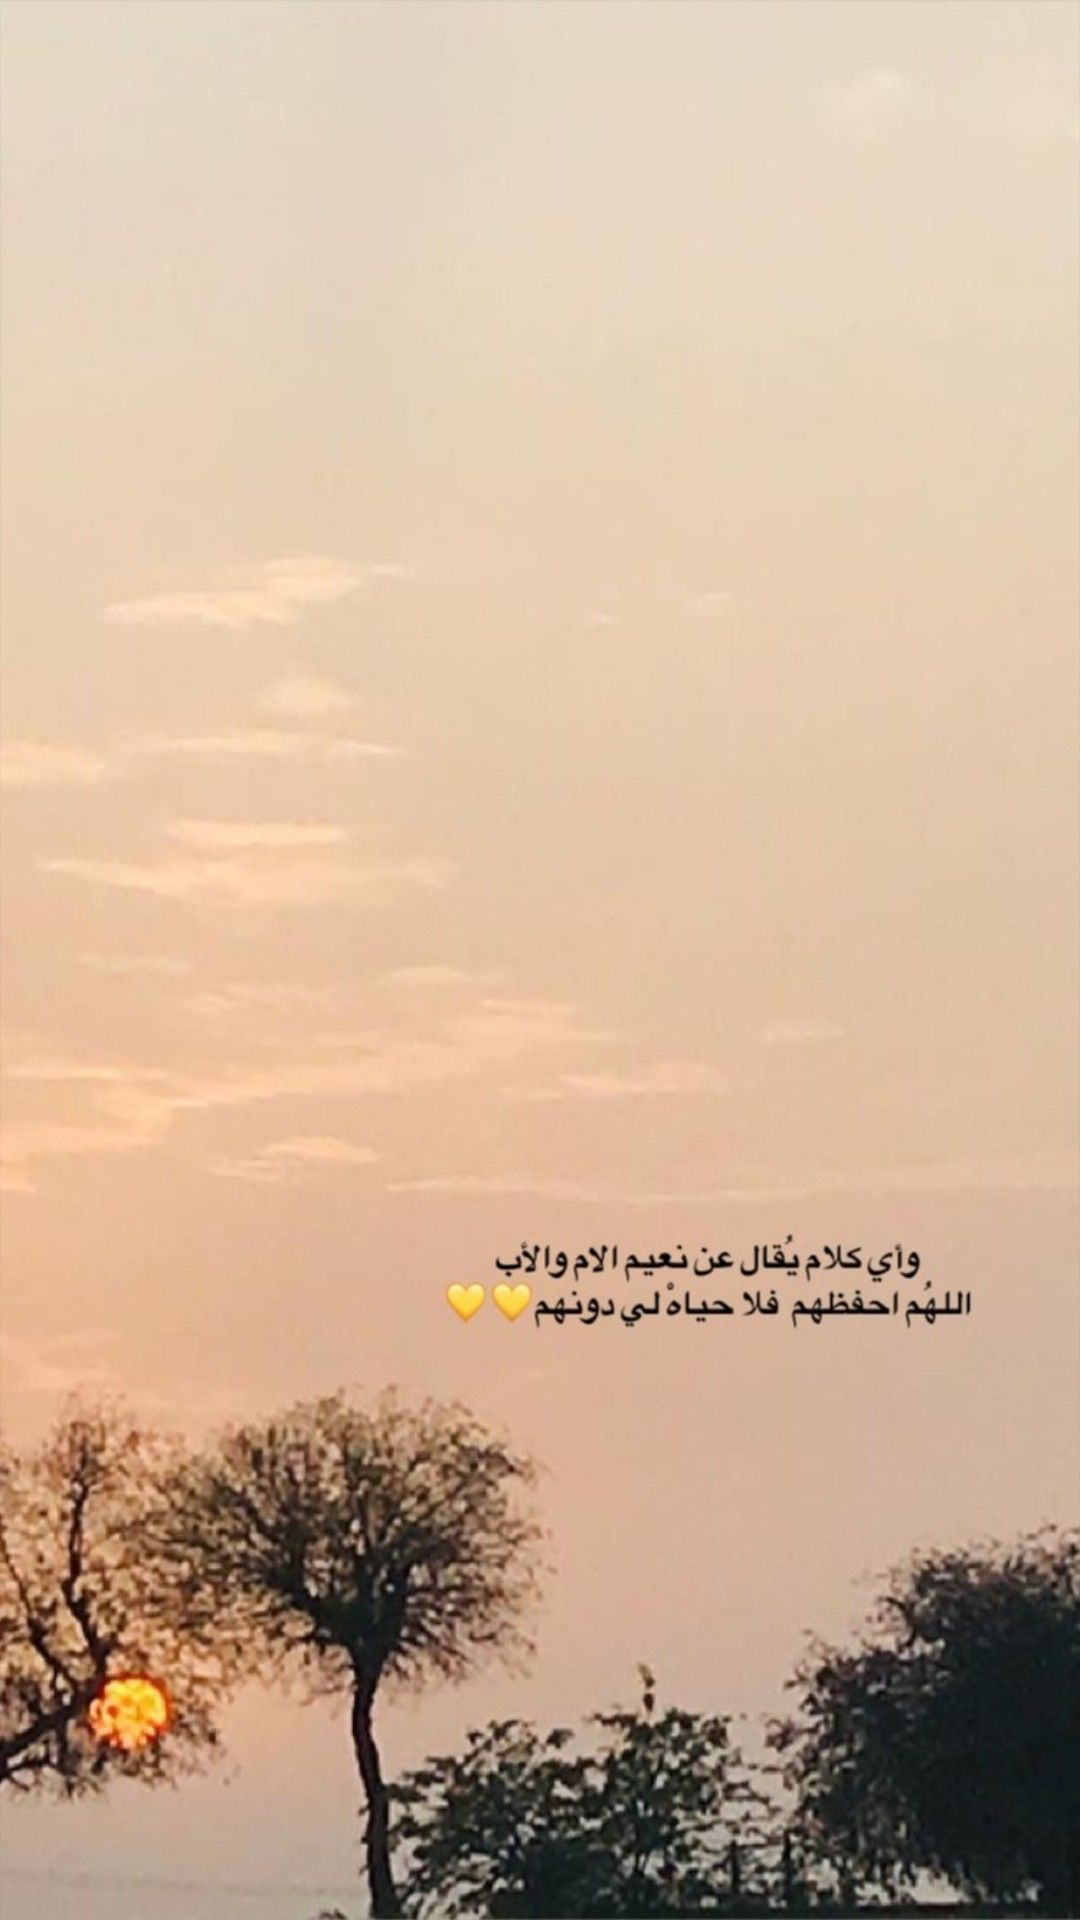 Pin By صمتي حكايہ On سنابات Sky Photography Nature Love Quotes Wallpaper Arabic Quotes